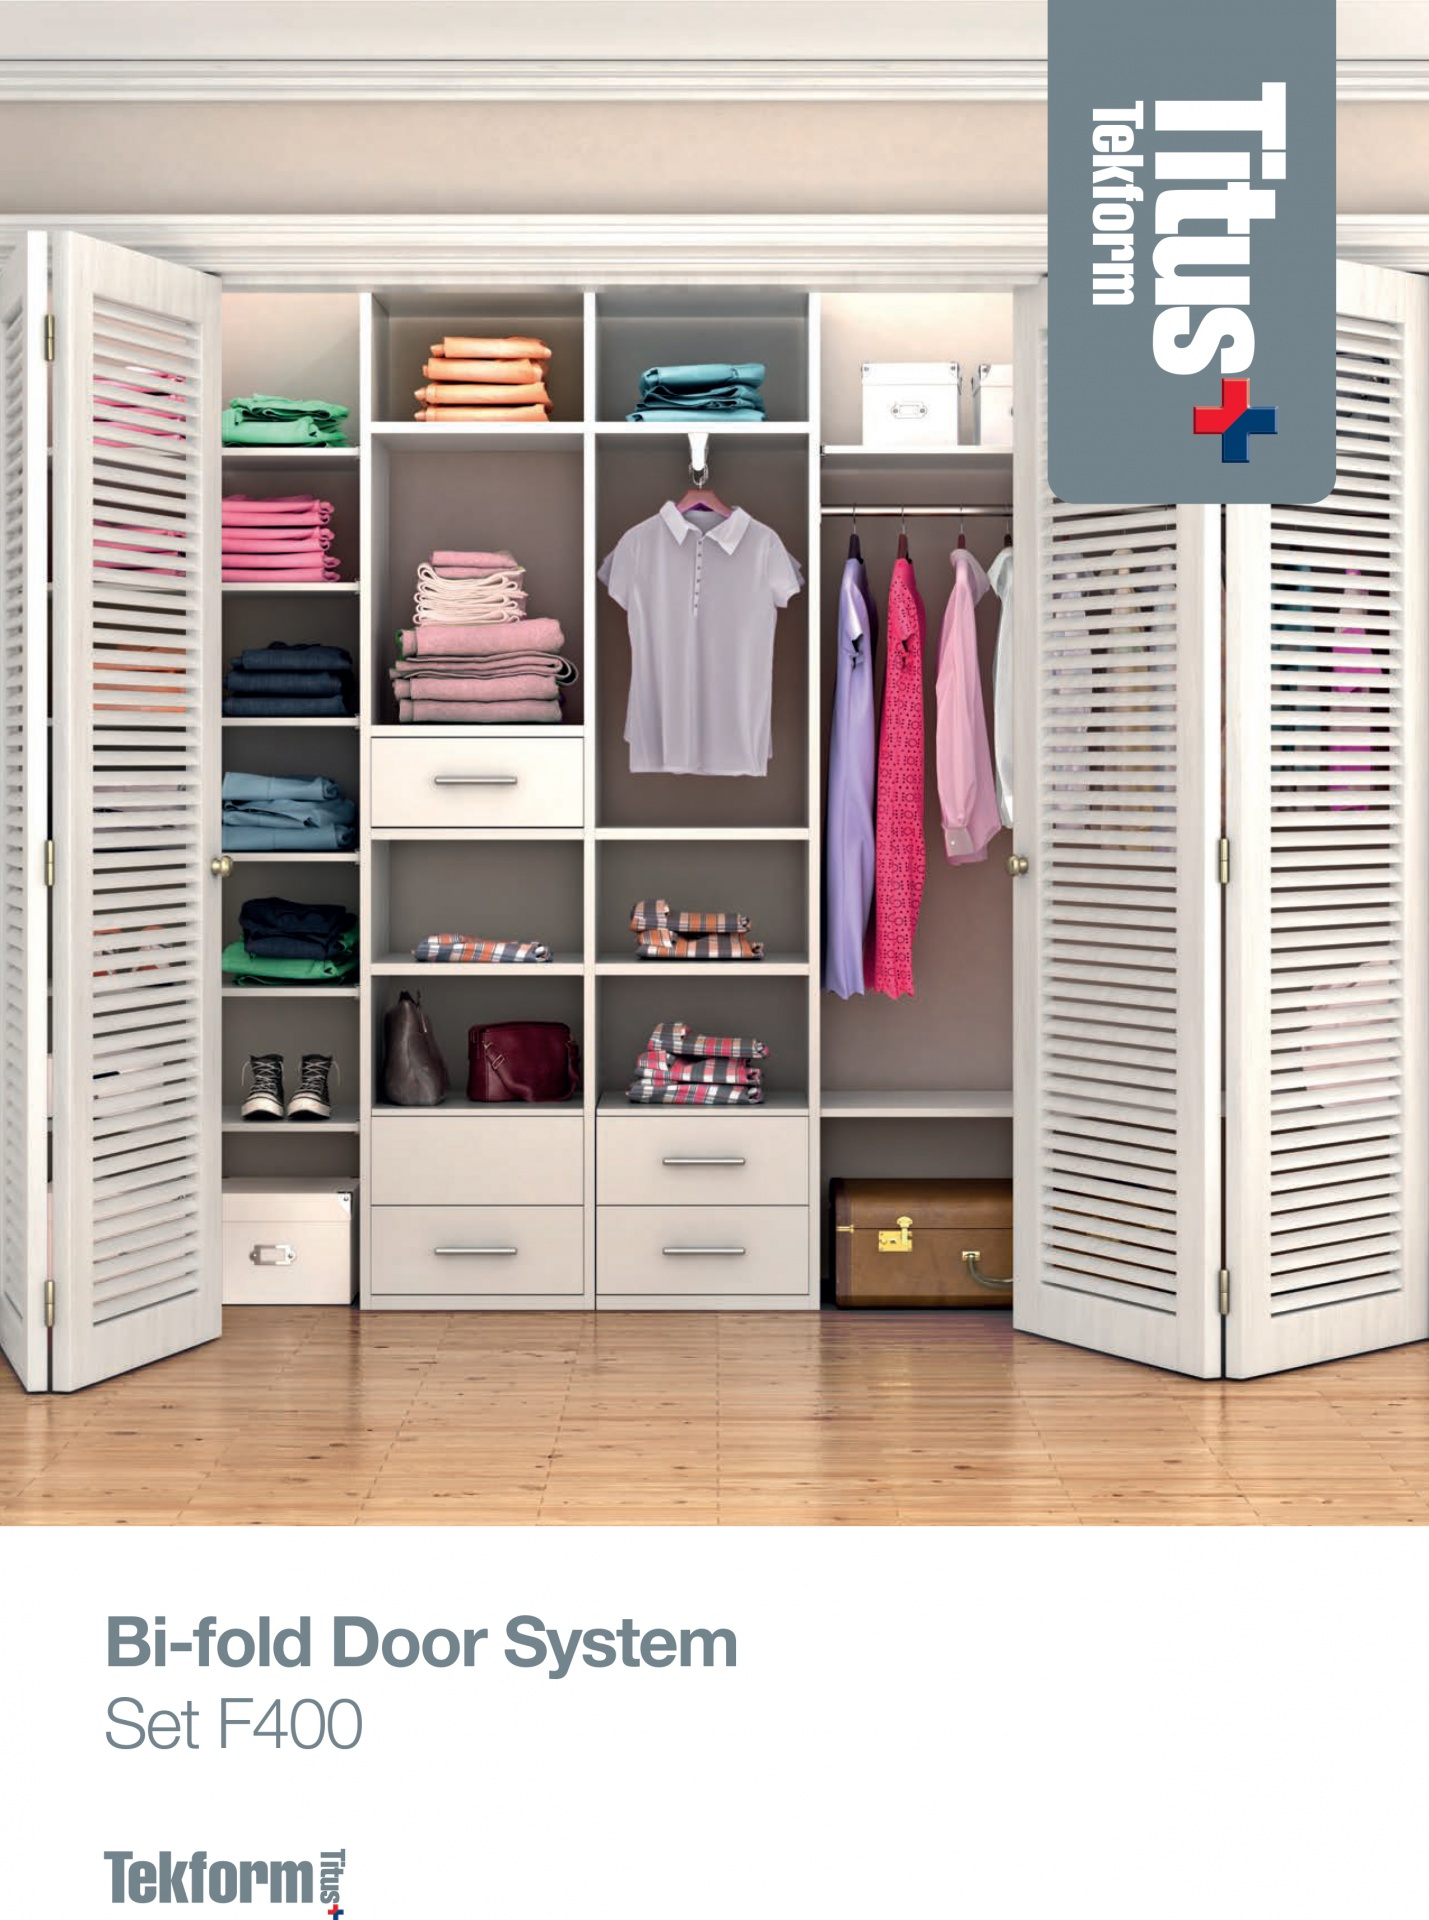 Set F400 Bi-Fold Door Brochure